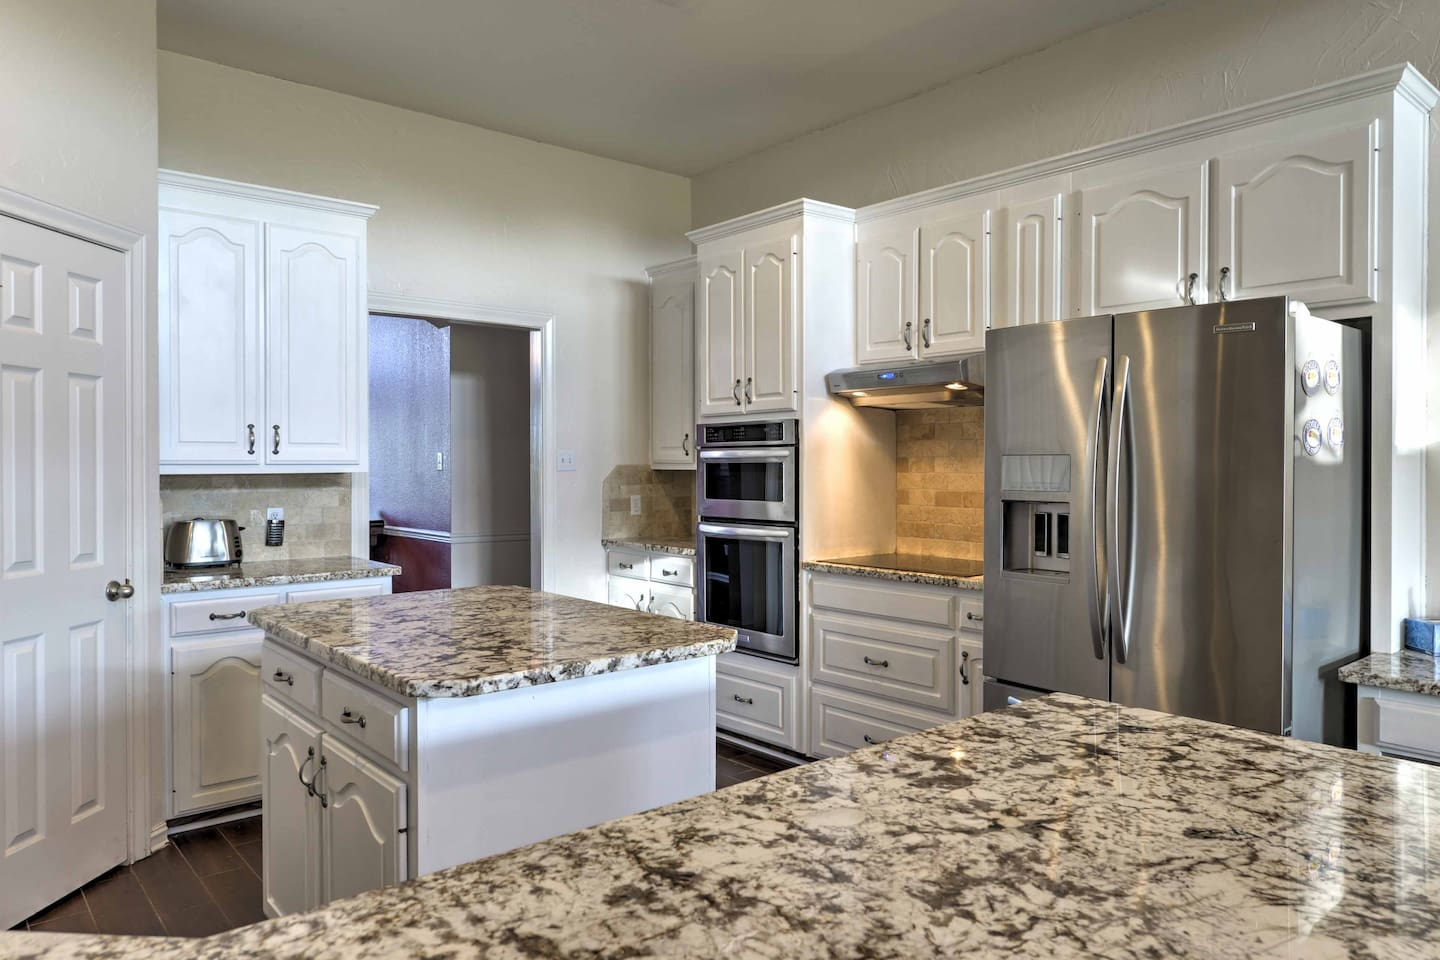 Experience a serene and relaxing getaway at this 4-bed, 3-bath vacation rental.